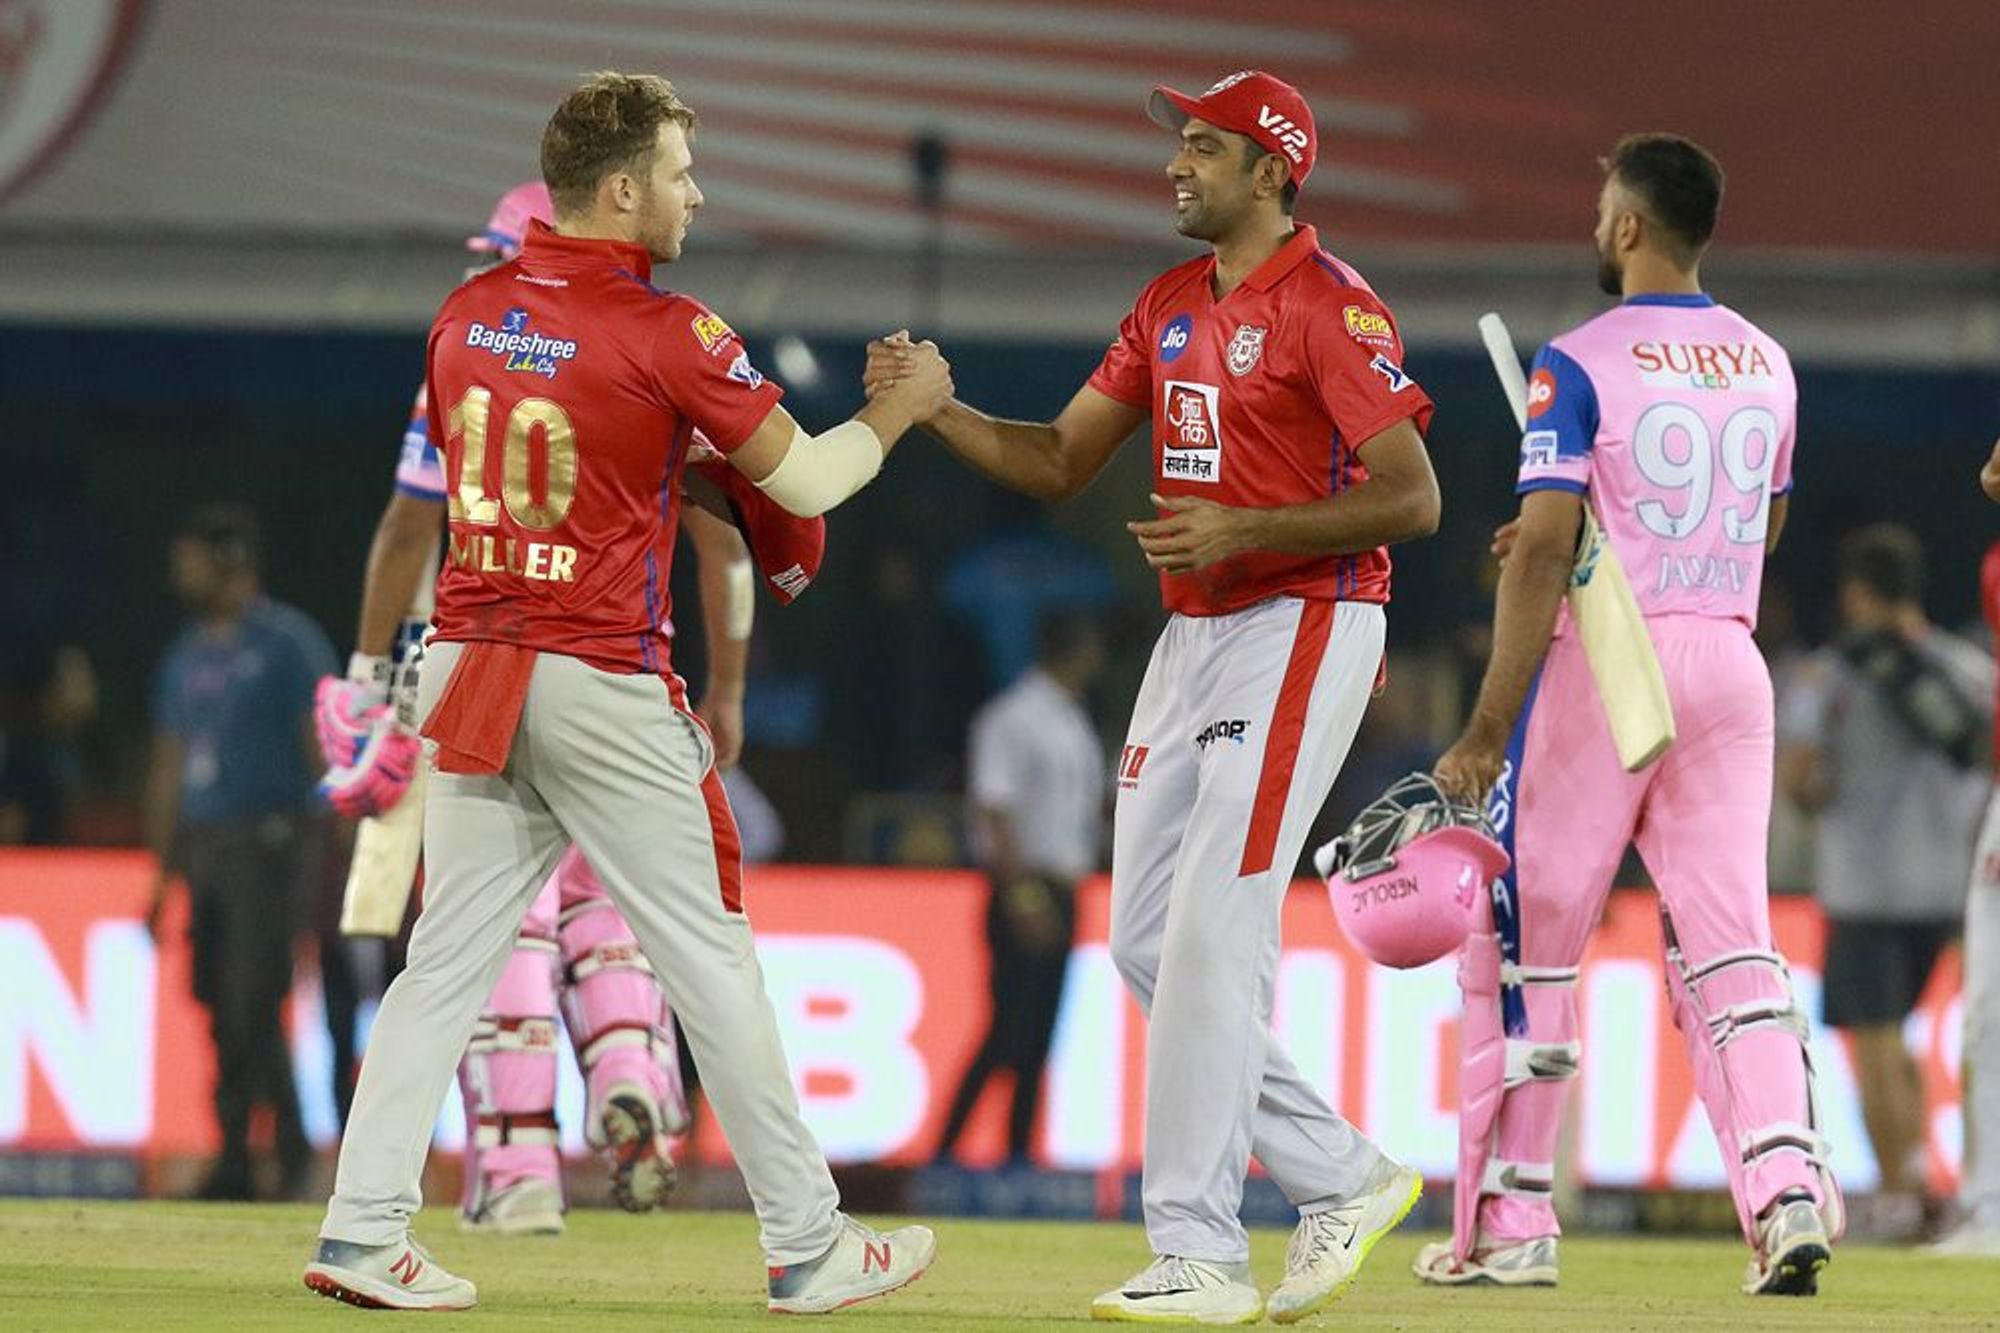 Kings XI Punjab, Rajasthan Royals, Seventh, IPL, 2019, NewsMoile, Sports, Cricket, NewsMobile, Mobile, News, India